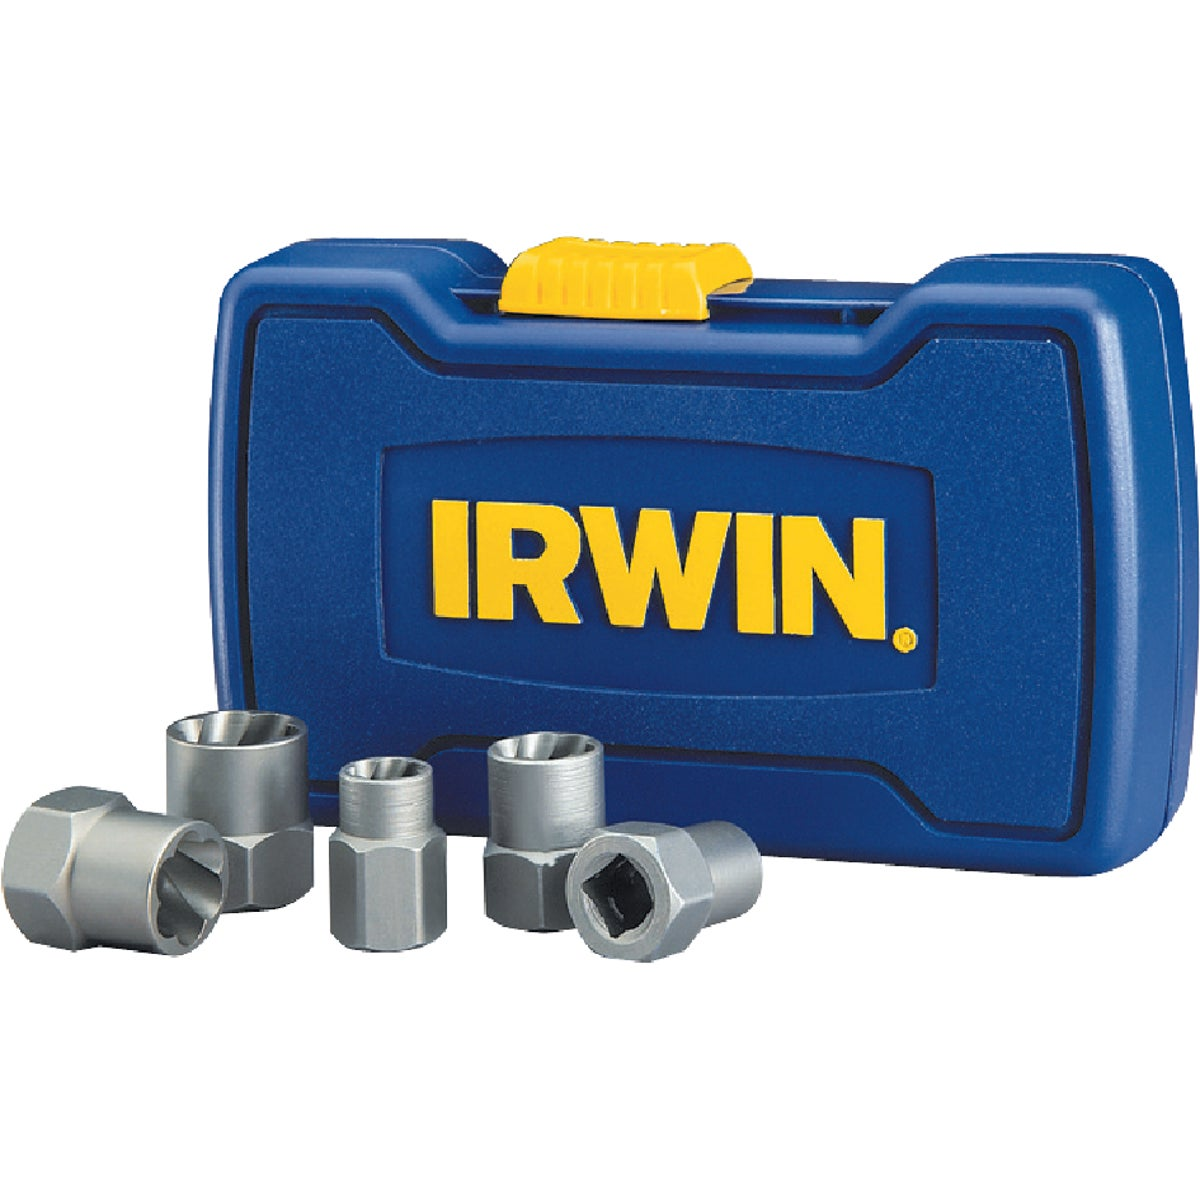 5PC BOLT EXTRACTOR - 394001 by Irwin Industr Tool